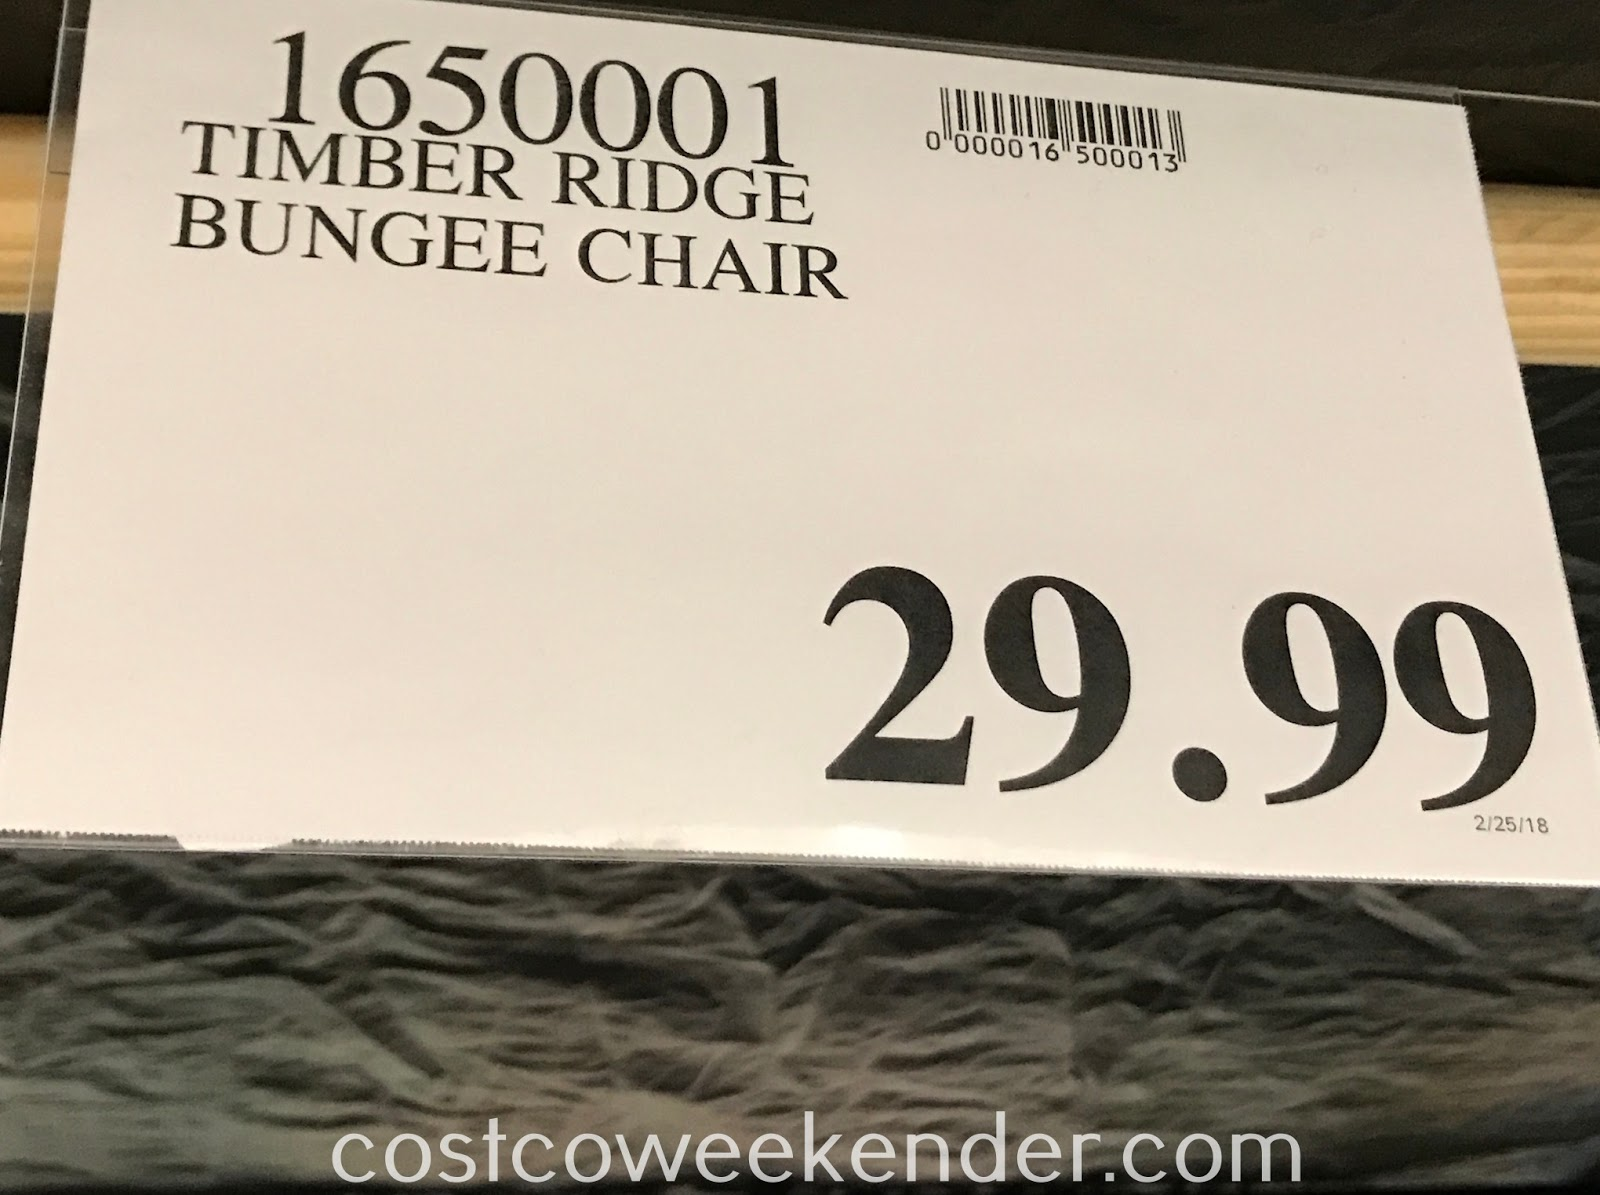 Deal for the Timber Ridge Bungee Chair at Costco